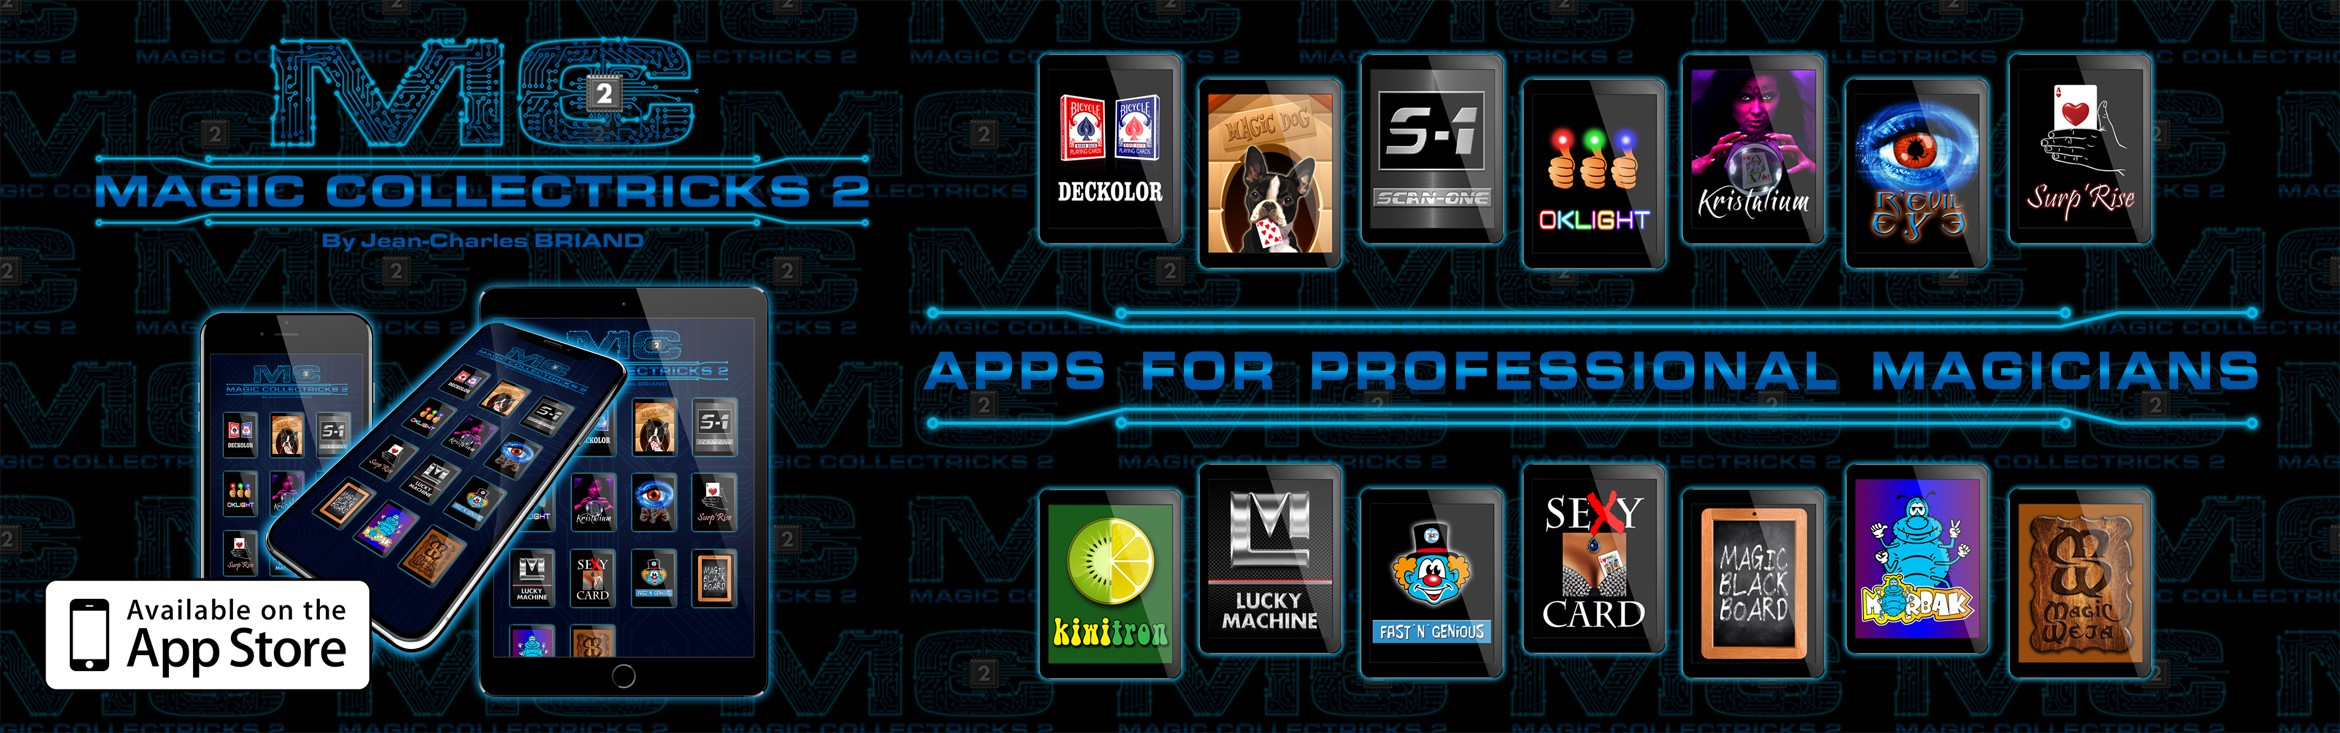 application-pour-magicien-apps-magicians-digital